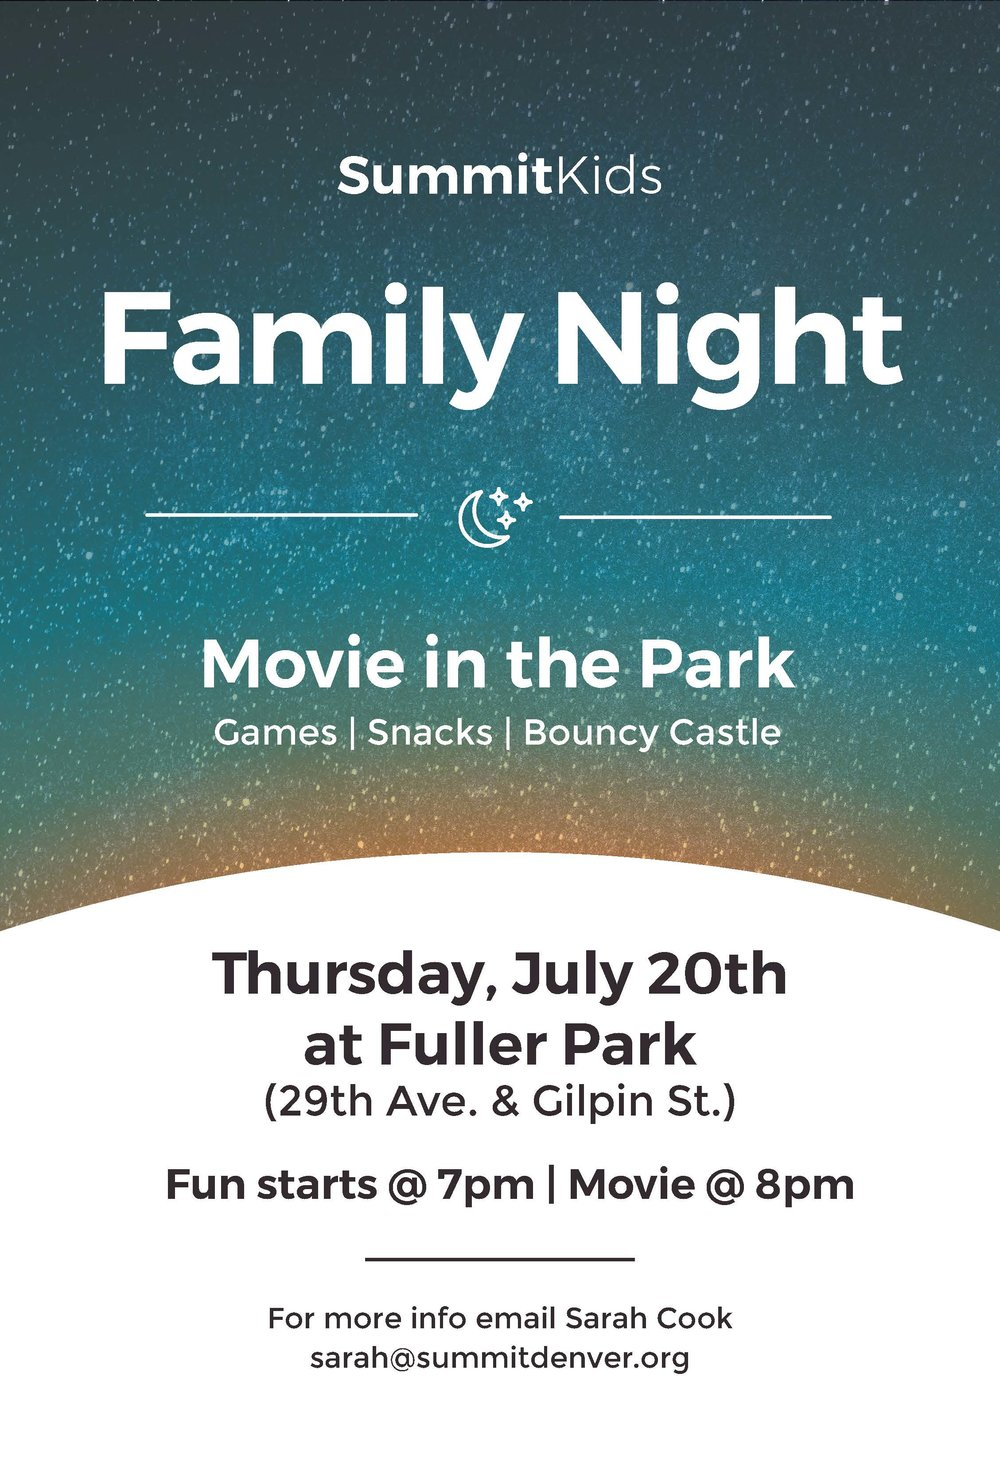 FamilyNight_Flyer.jpg